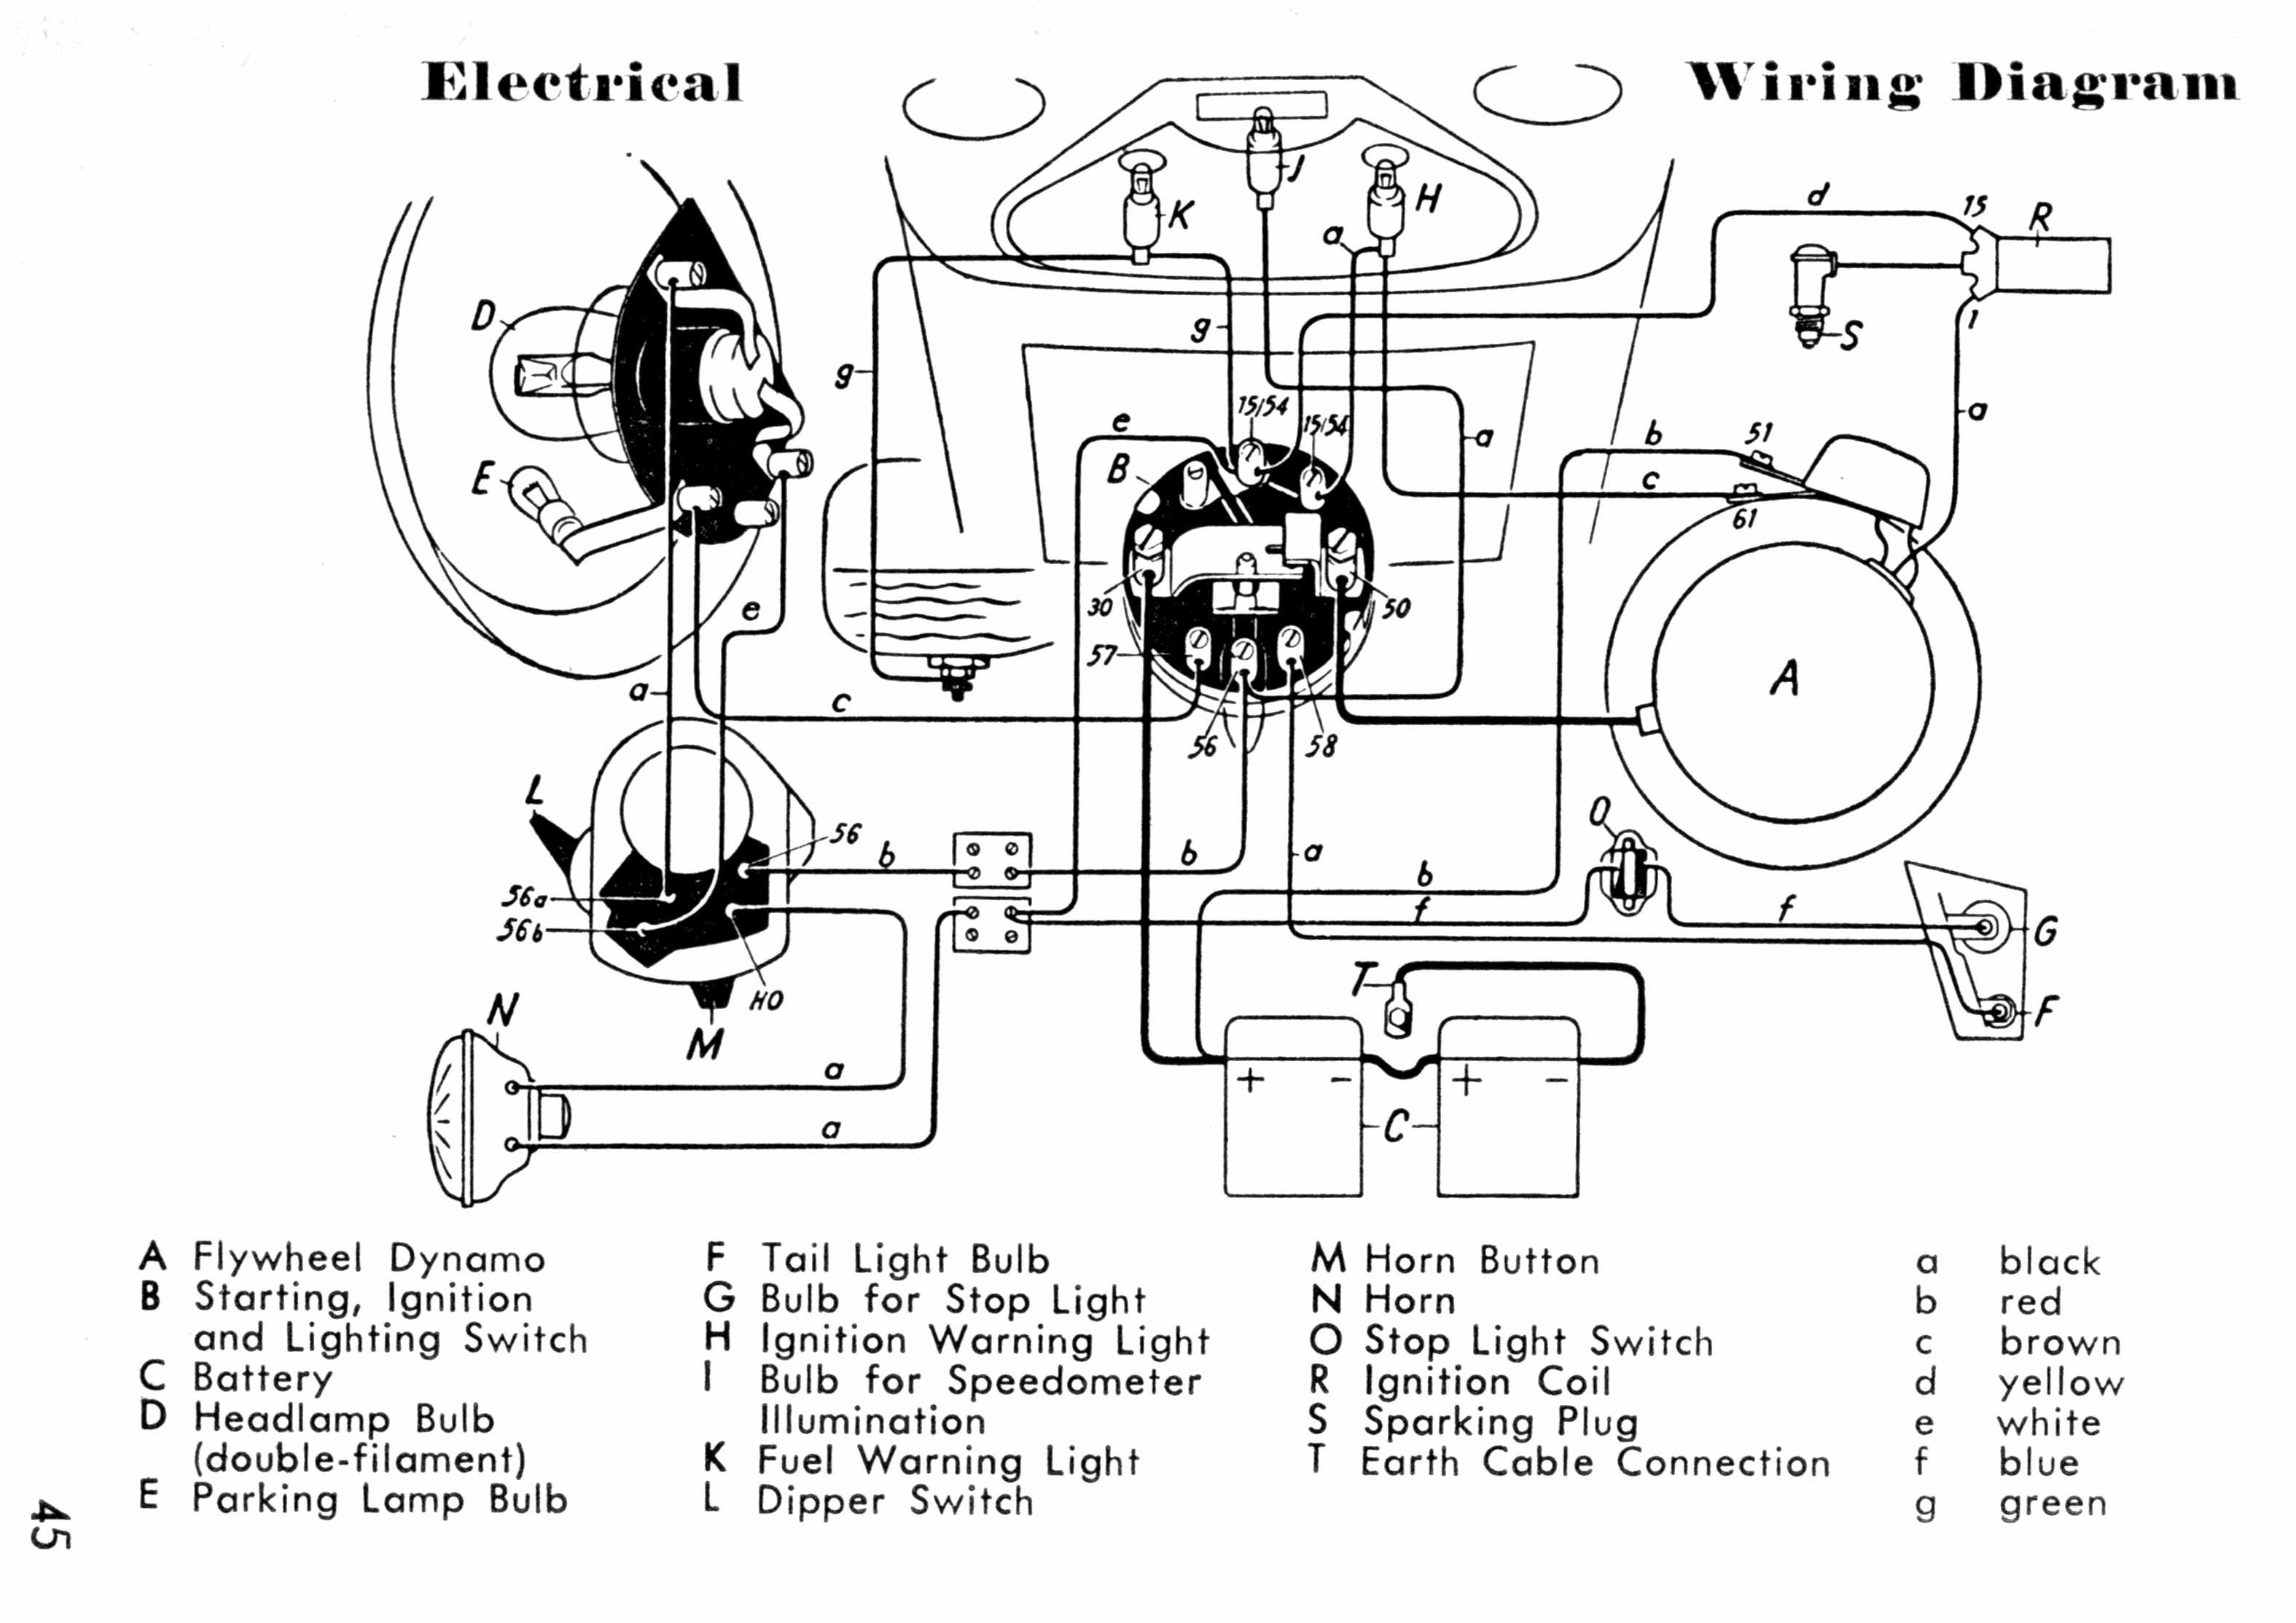 schematic electric scooter wiring diagram closet pinterest rh pinterest com tomos moped engine diagram 50cc moped engine diagram